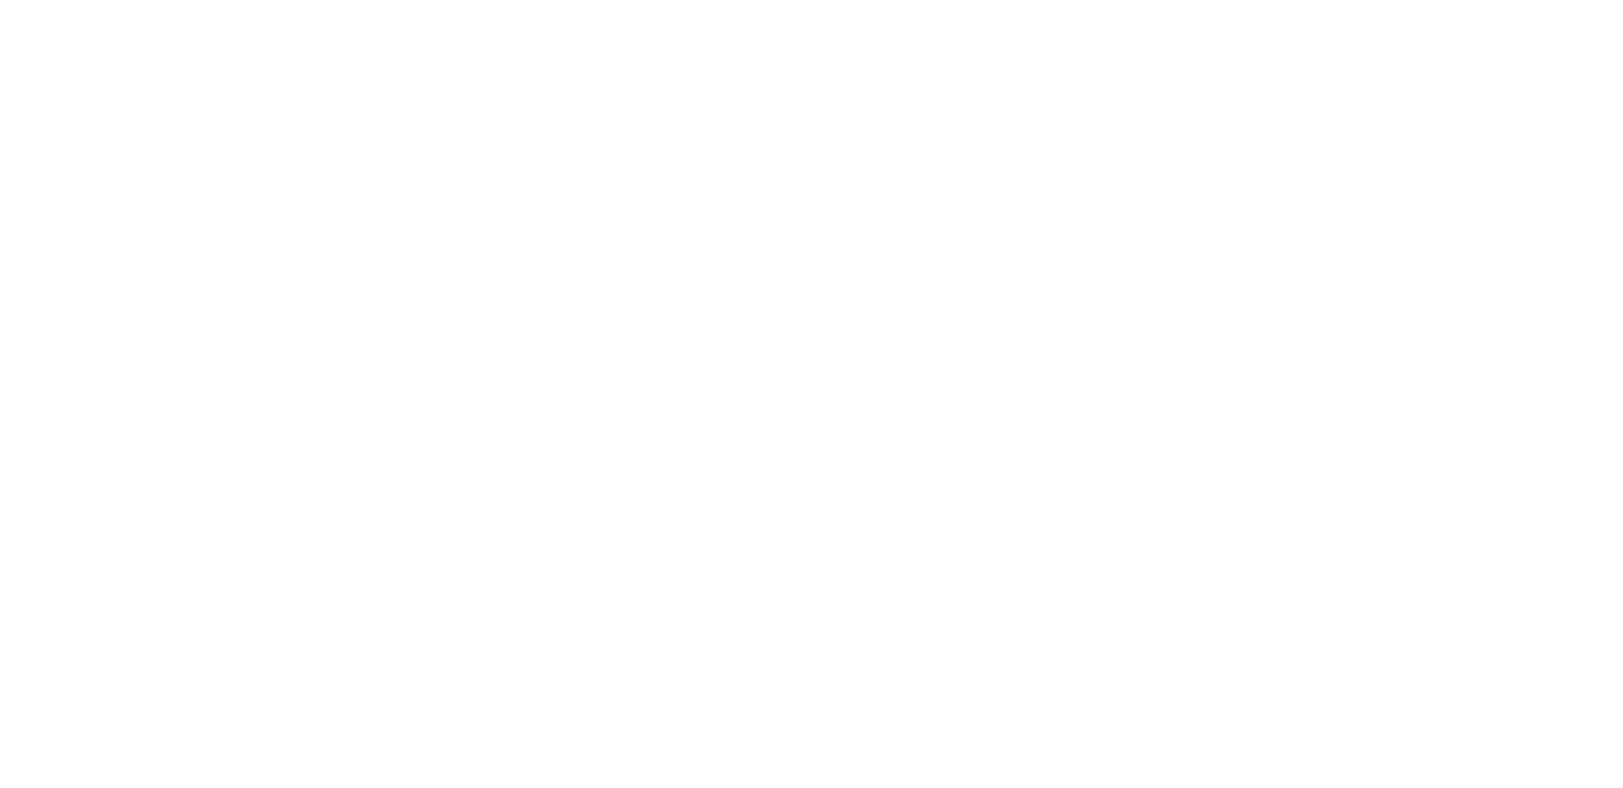 HARLEY-DAVIDSON ISTANBUL EAST